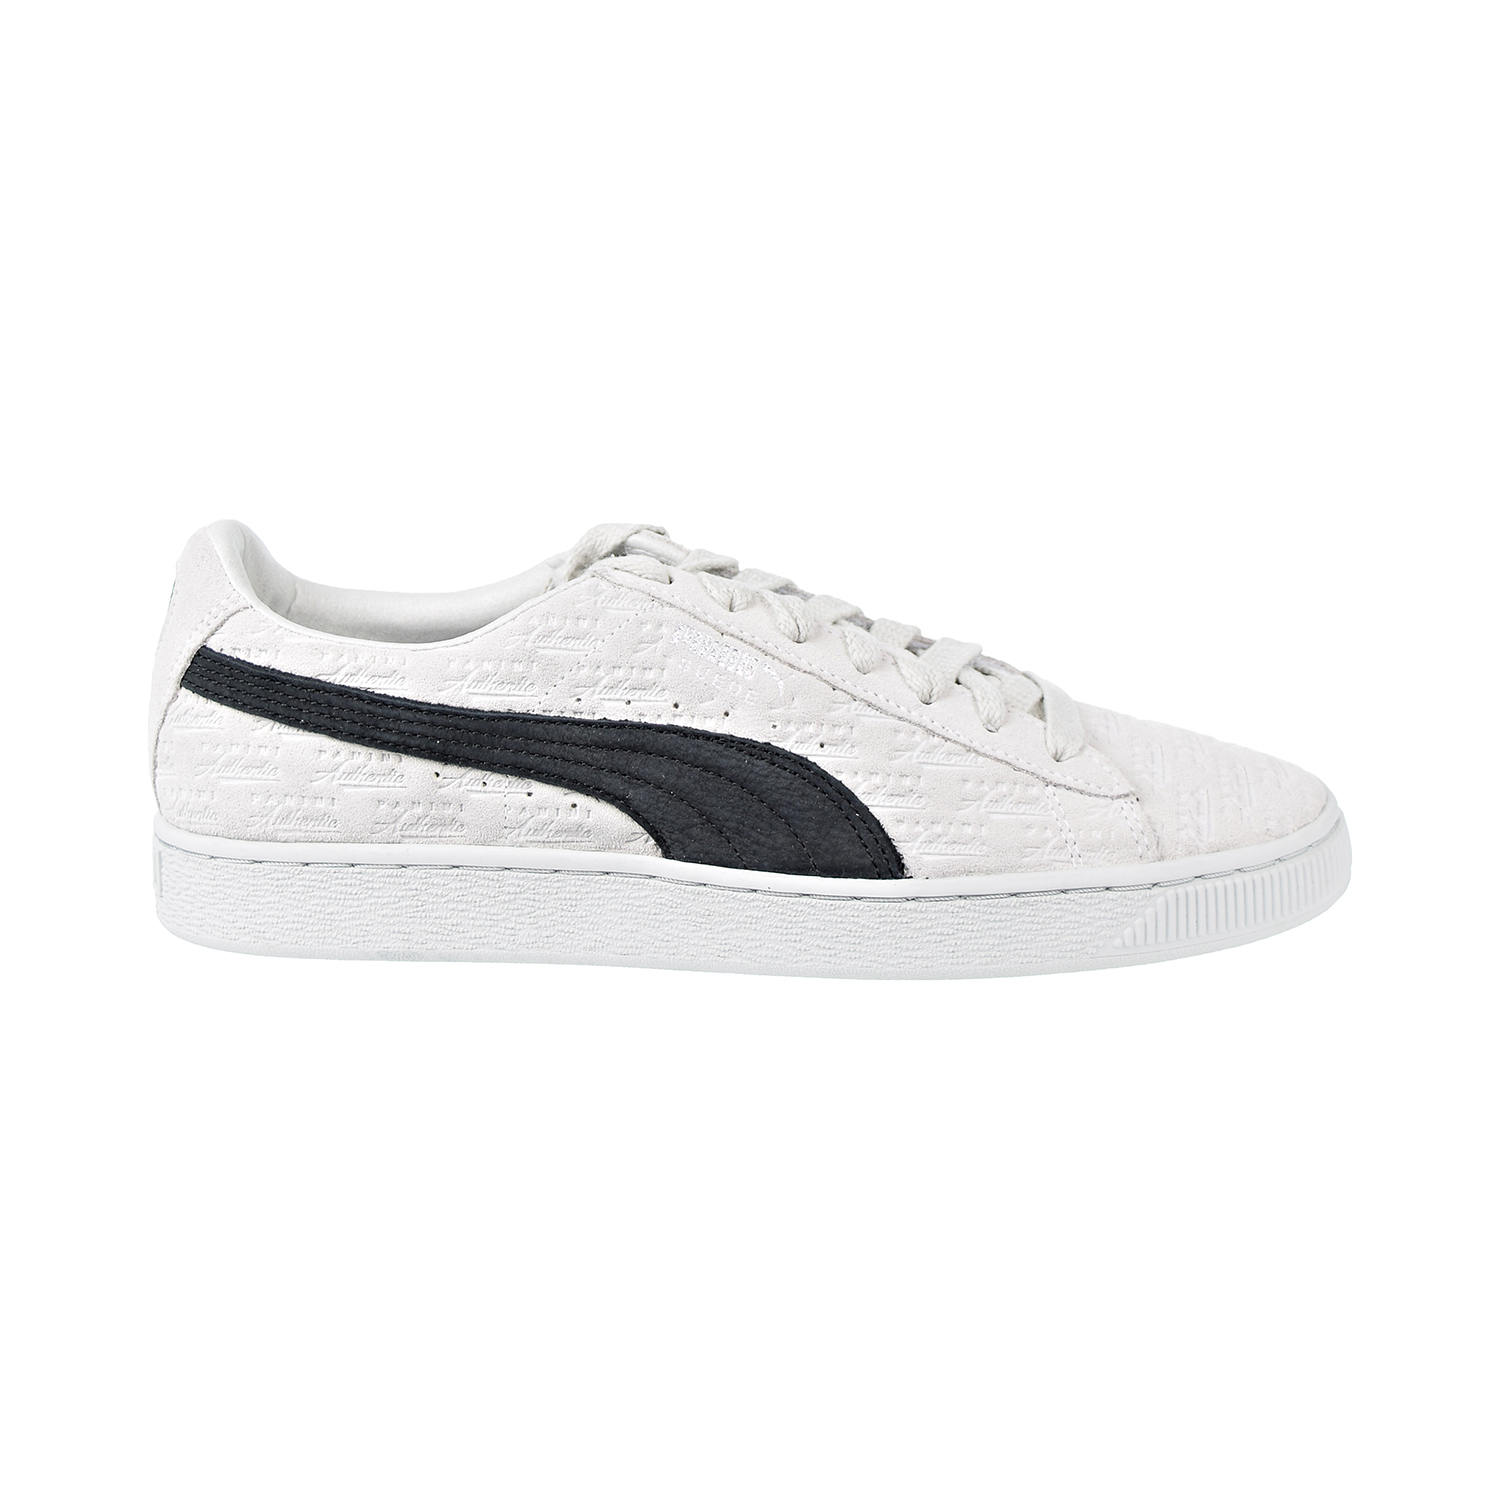 Details about Puma Suede Classic x PANINI Men's Shoes White Black 366323 01